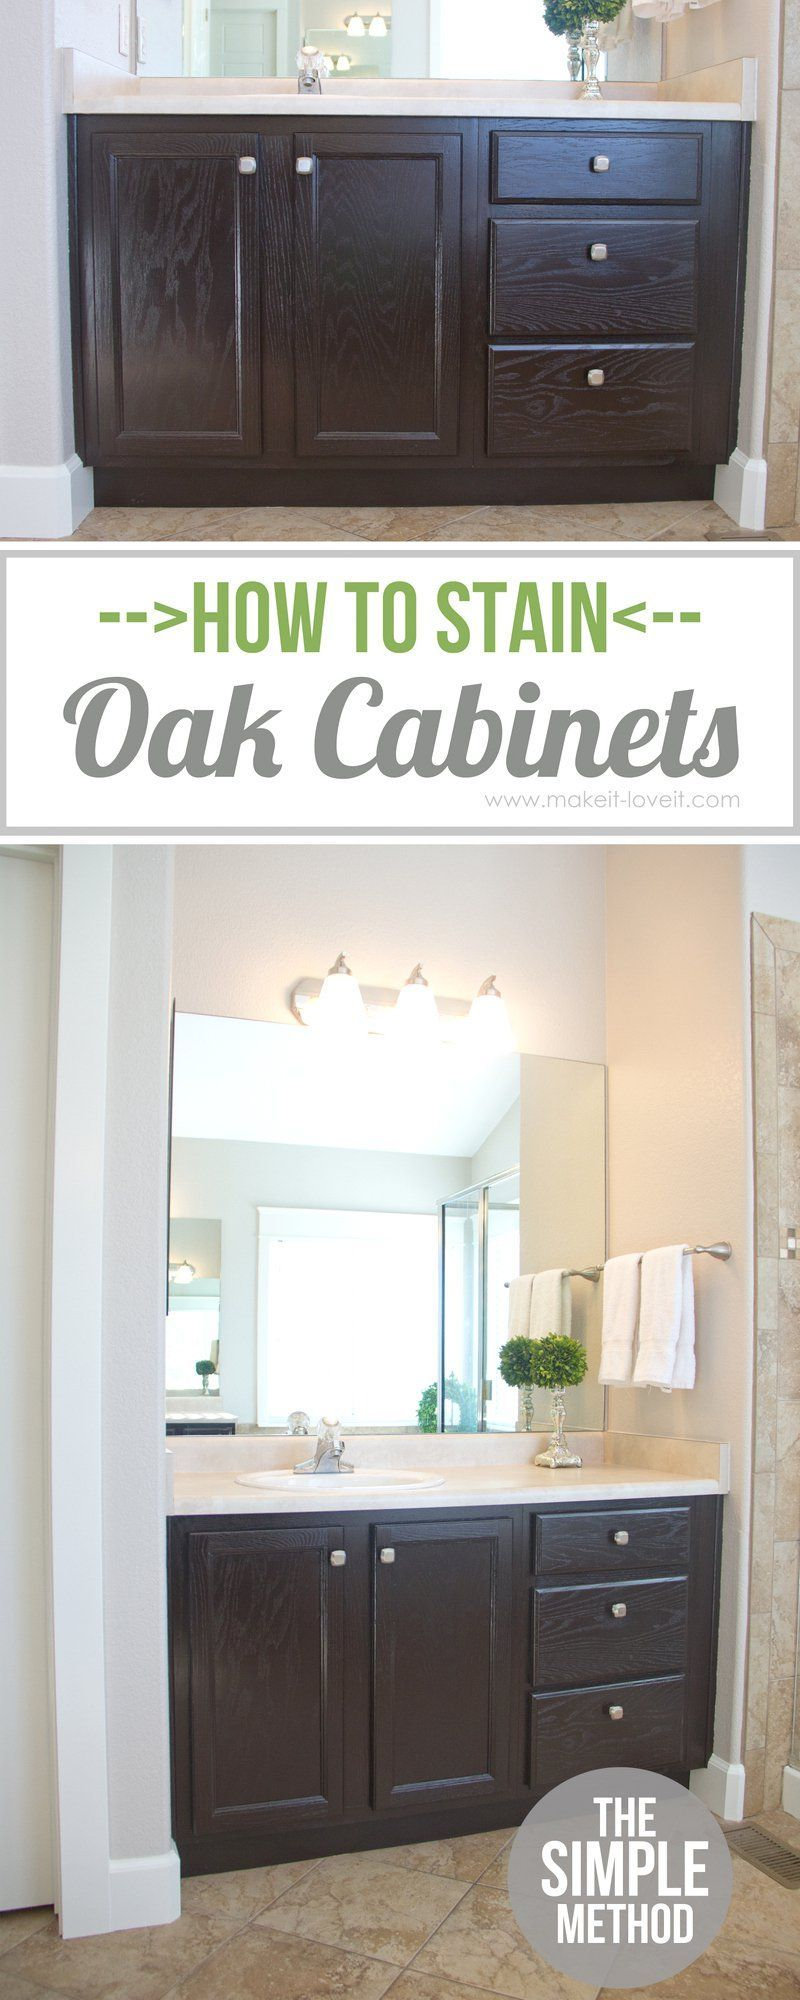 How To Stain Oak Cabinets The Simple Method Without Sanding Staining Cabinets Oak Cabinets Home Diy